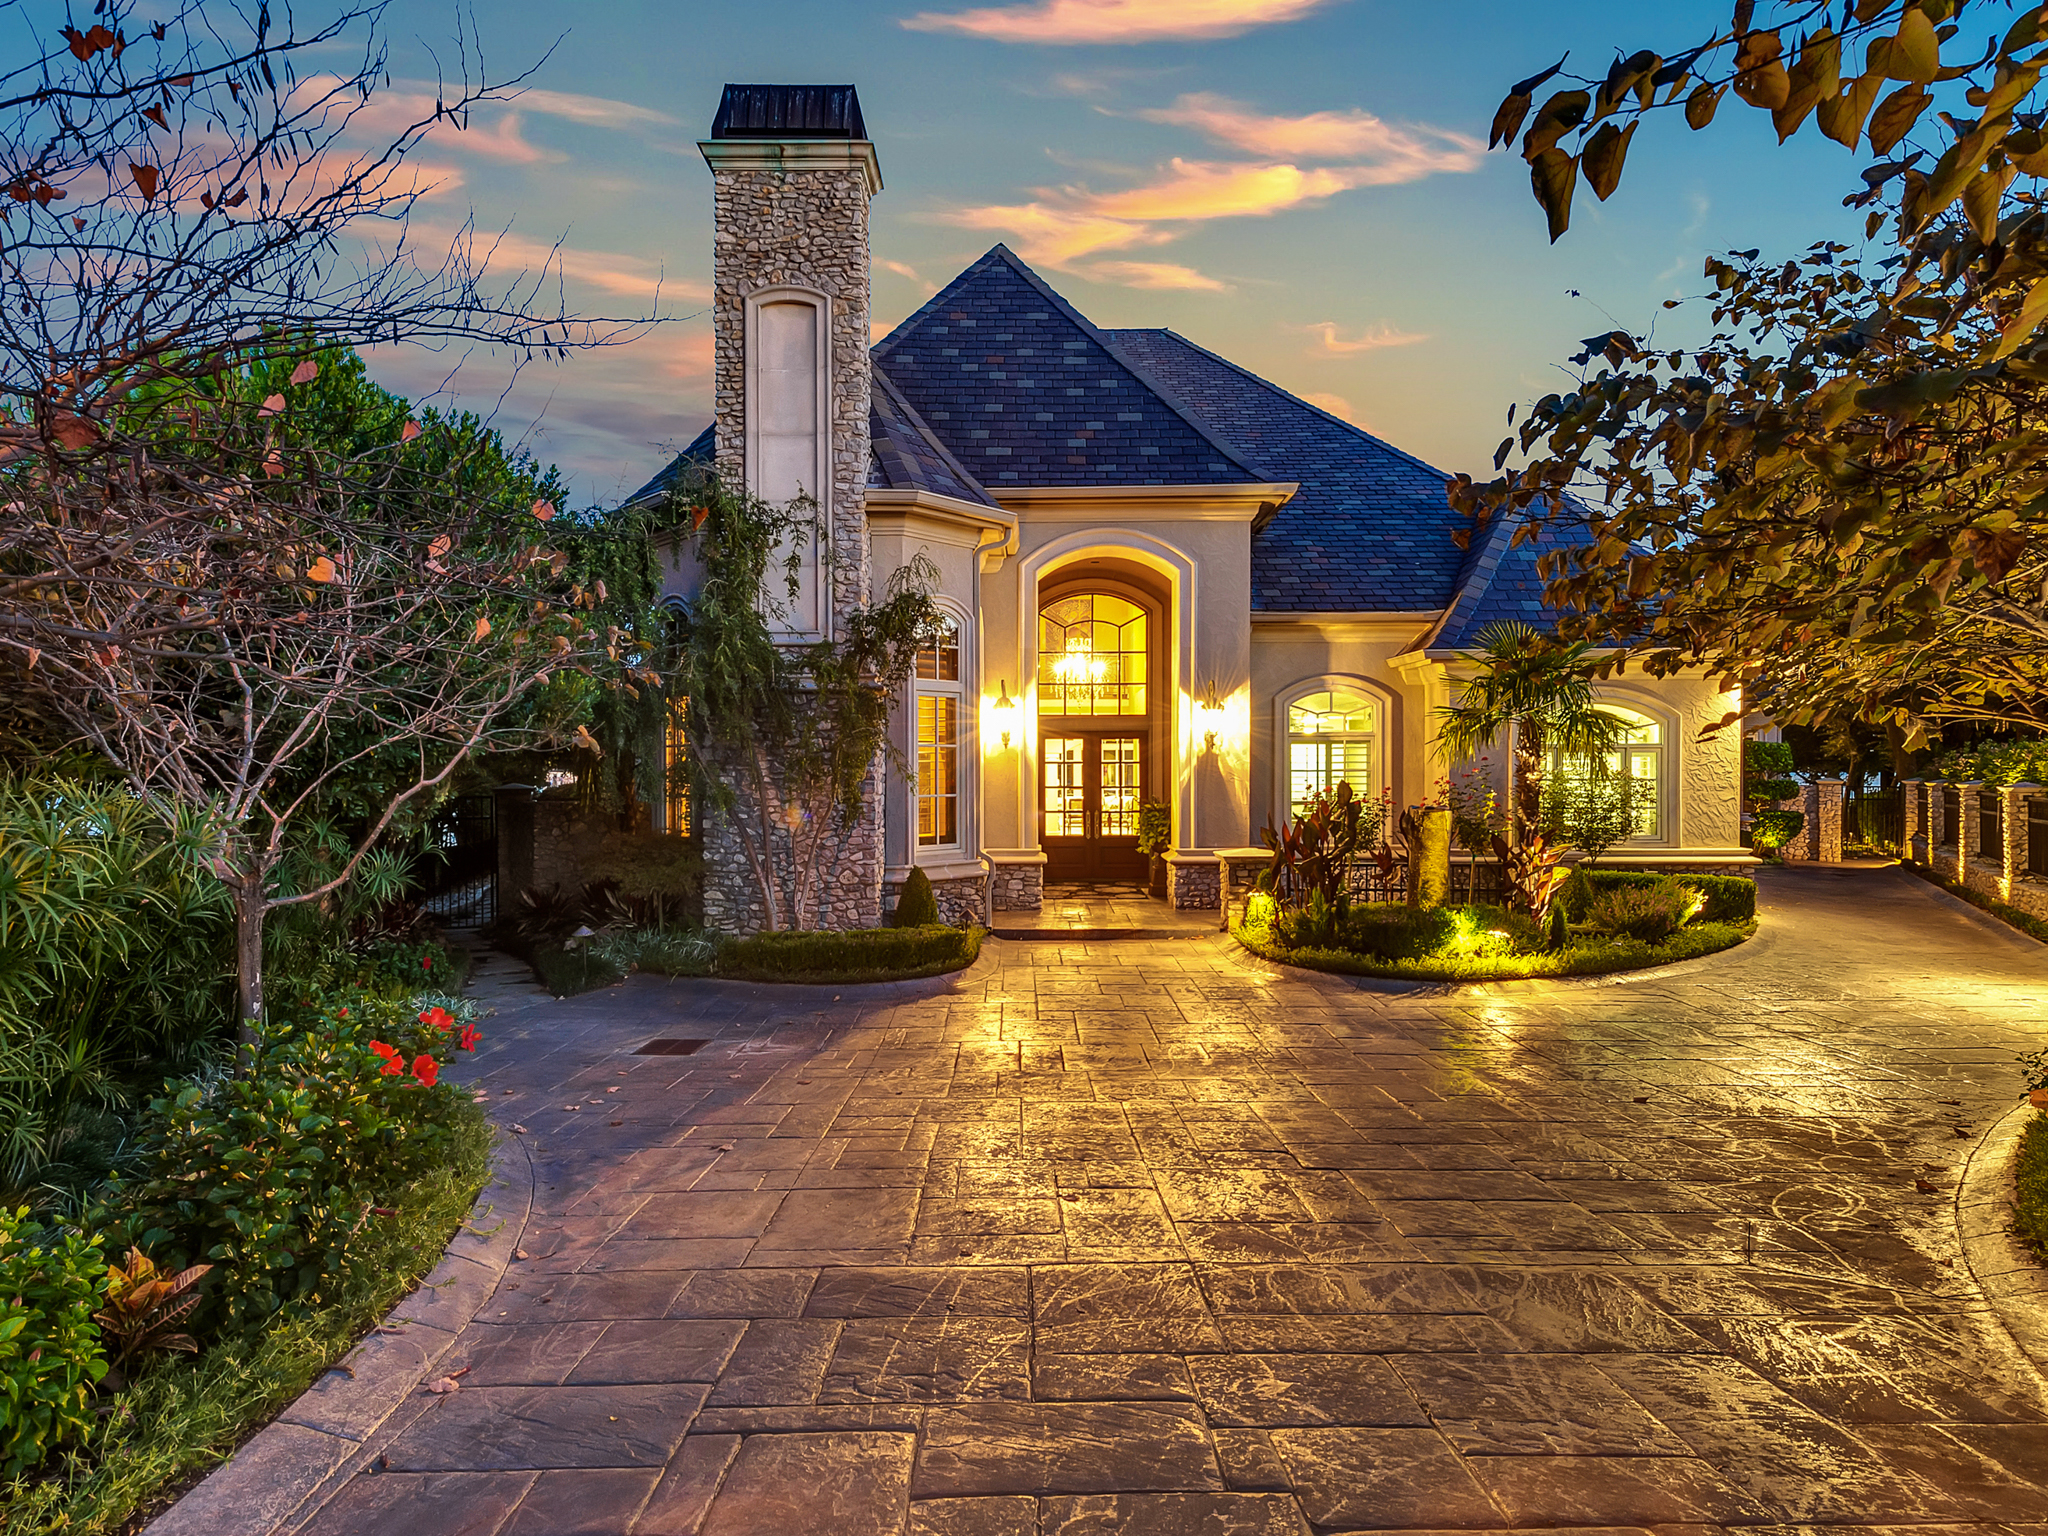 独户住宅 为 销售 在 Luxury Waterfront Home on Eagle Mountain Lake 8900 Crest Ridge Drive Fort Worth, 得克萨斯州 76179 美国